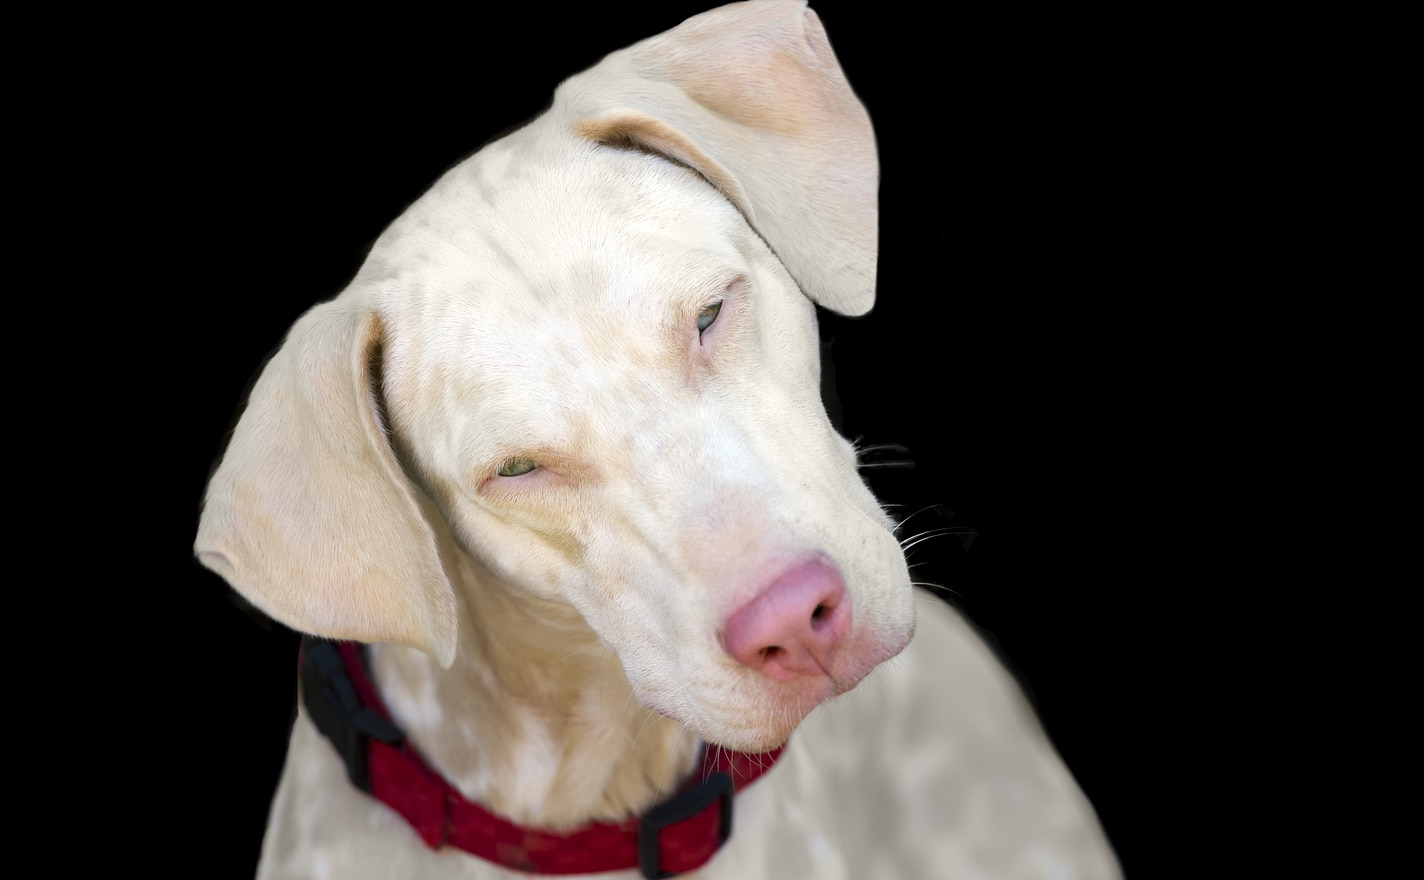 Albino dog with pink nose and tilted head.